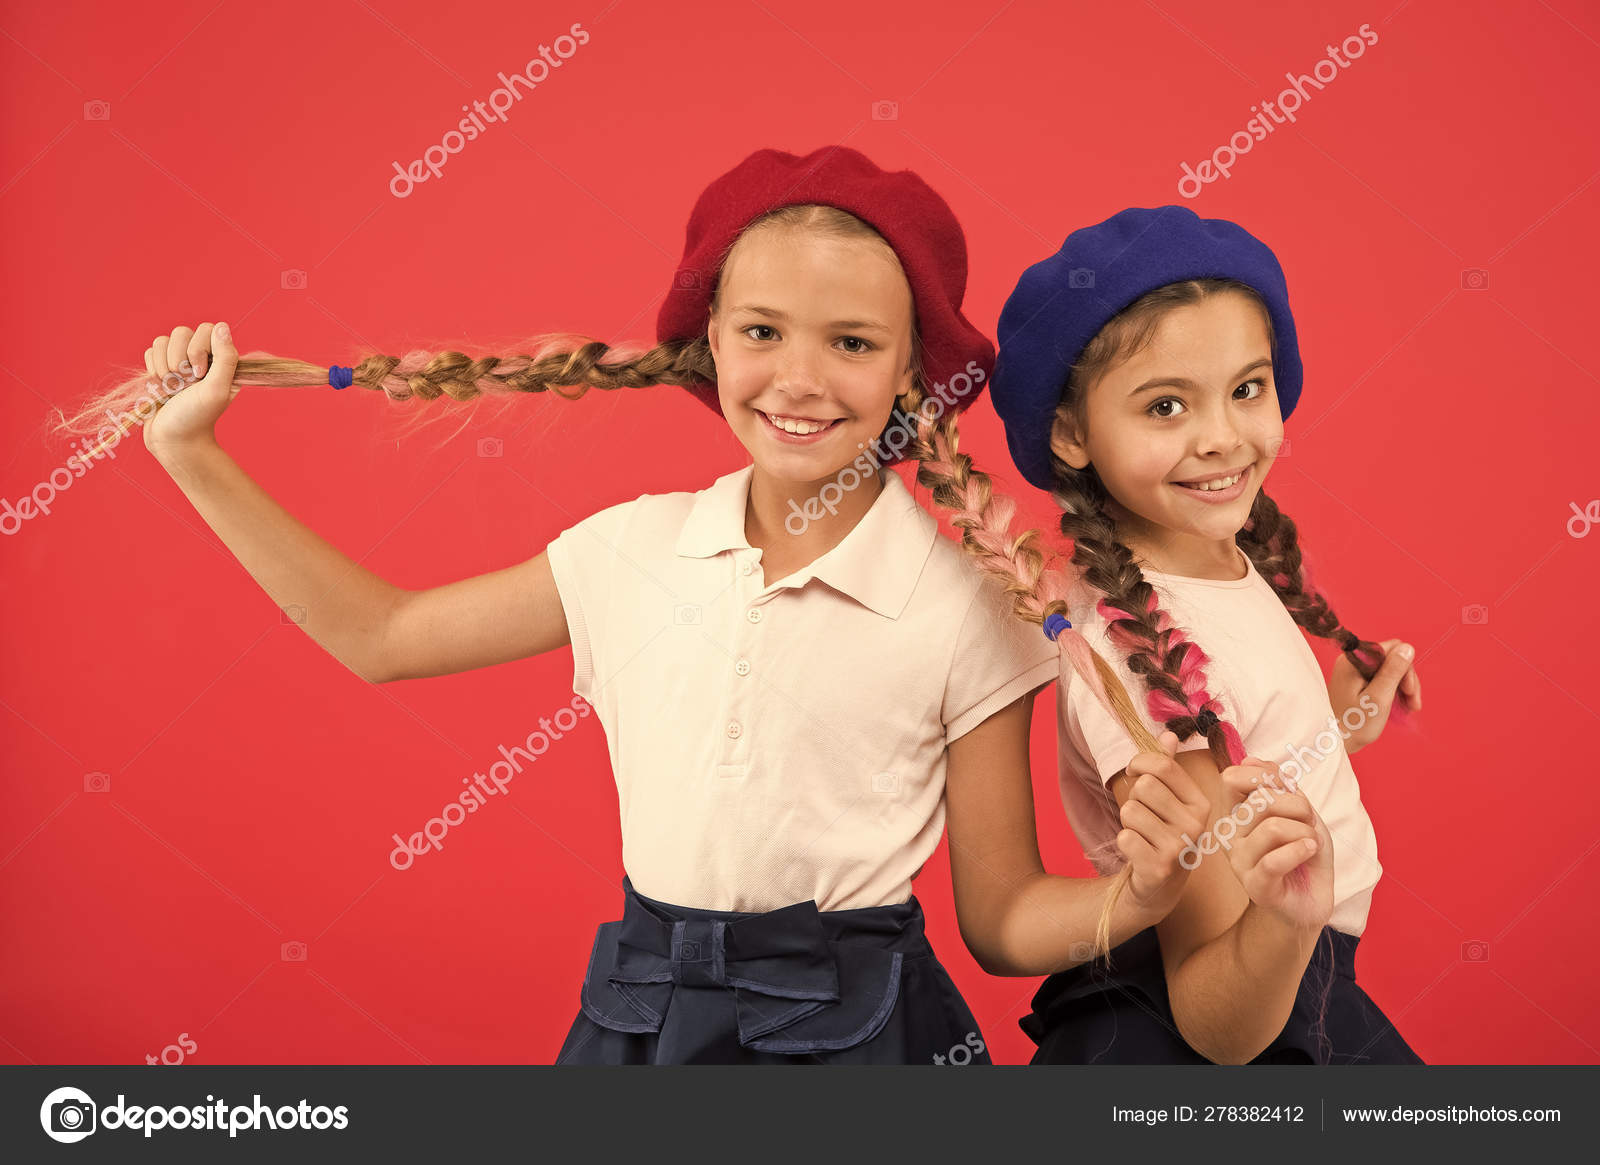 Their Own Style French Style Girls Cute Girls Having The